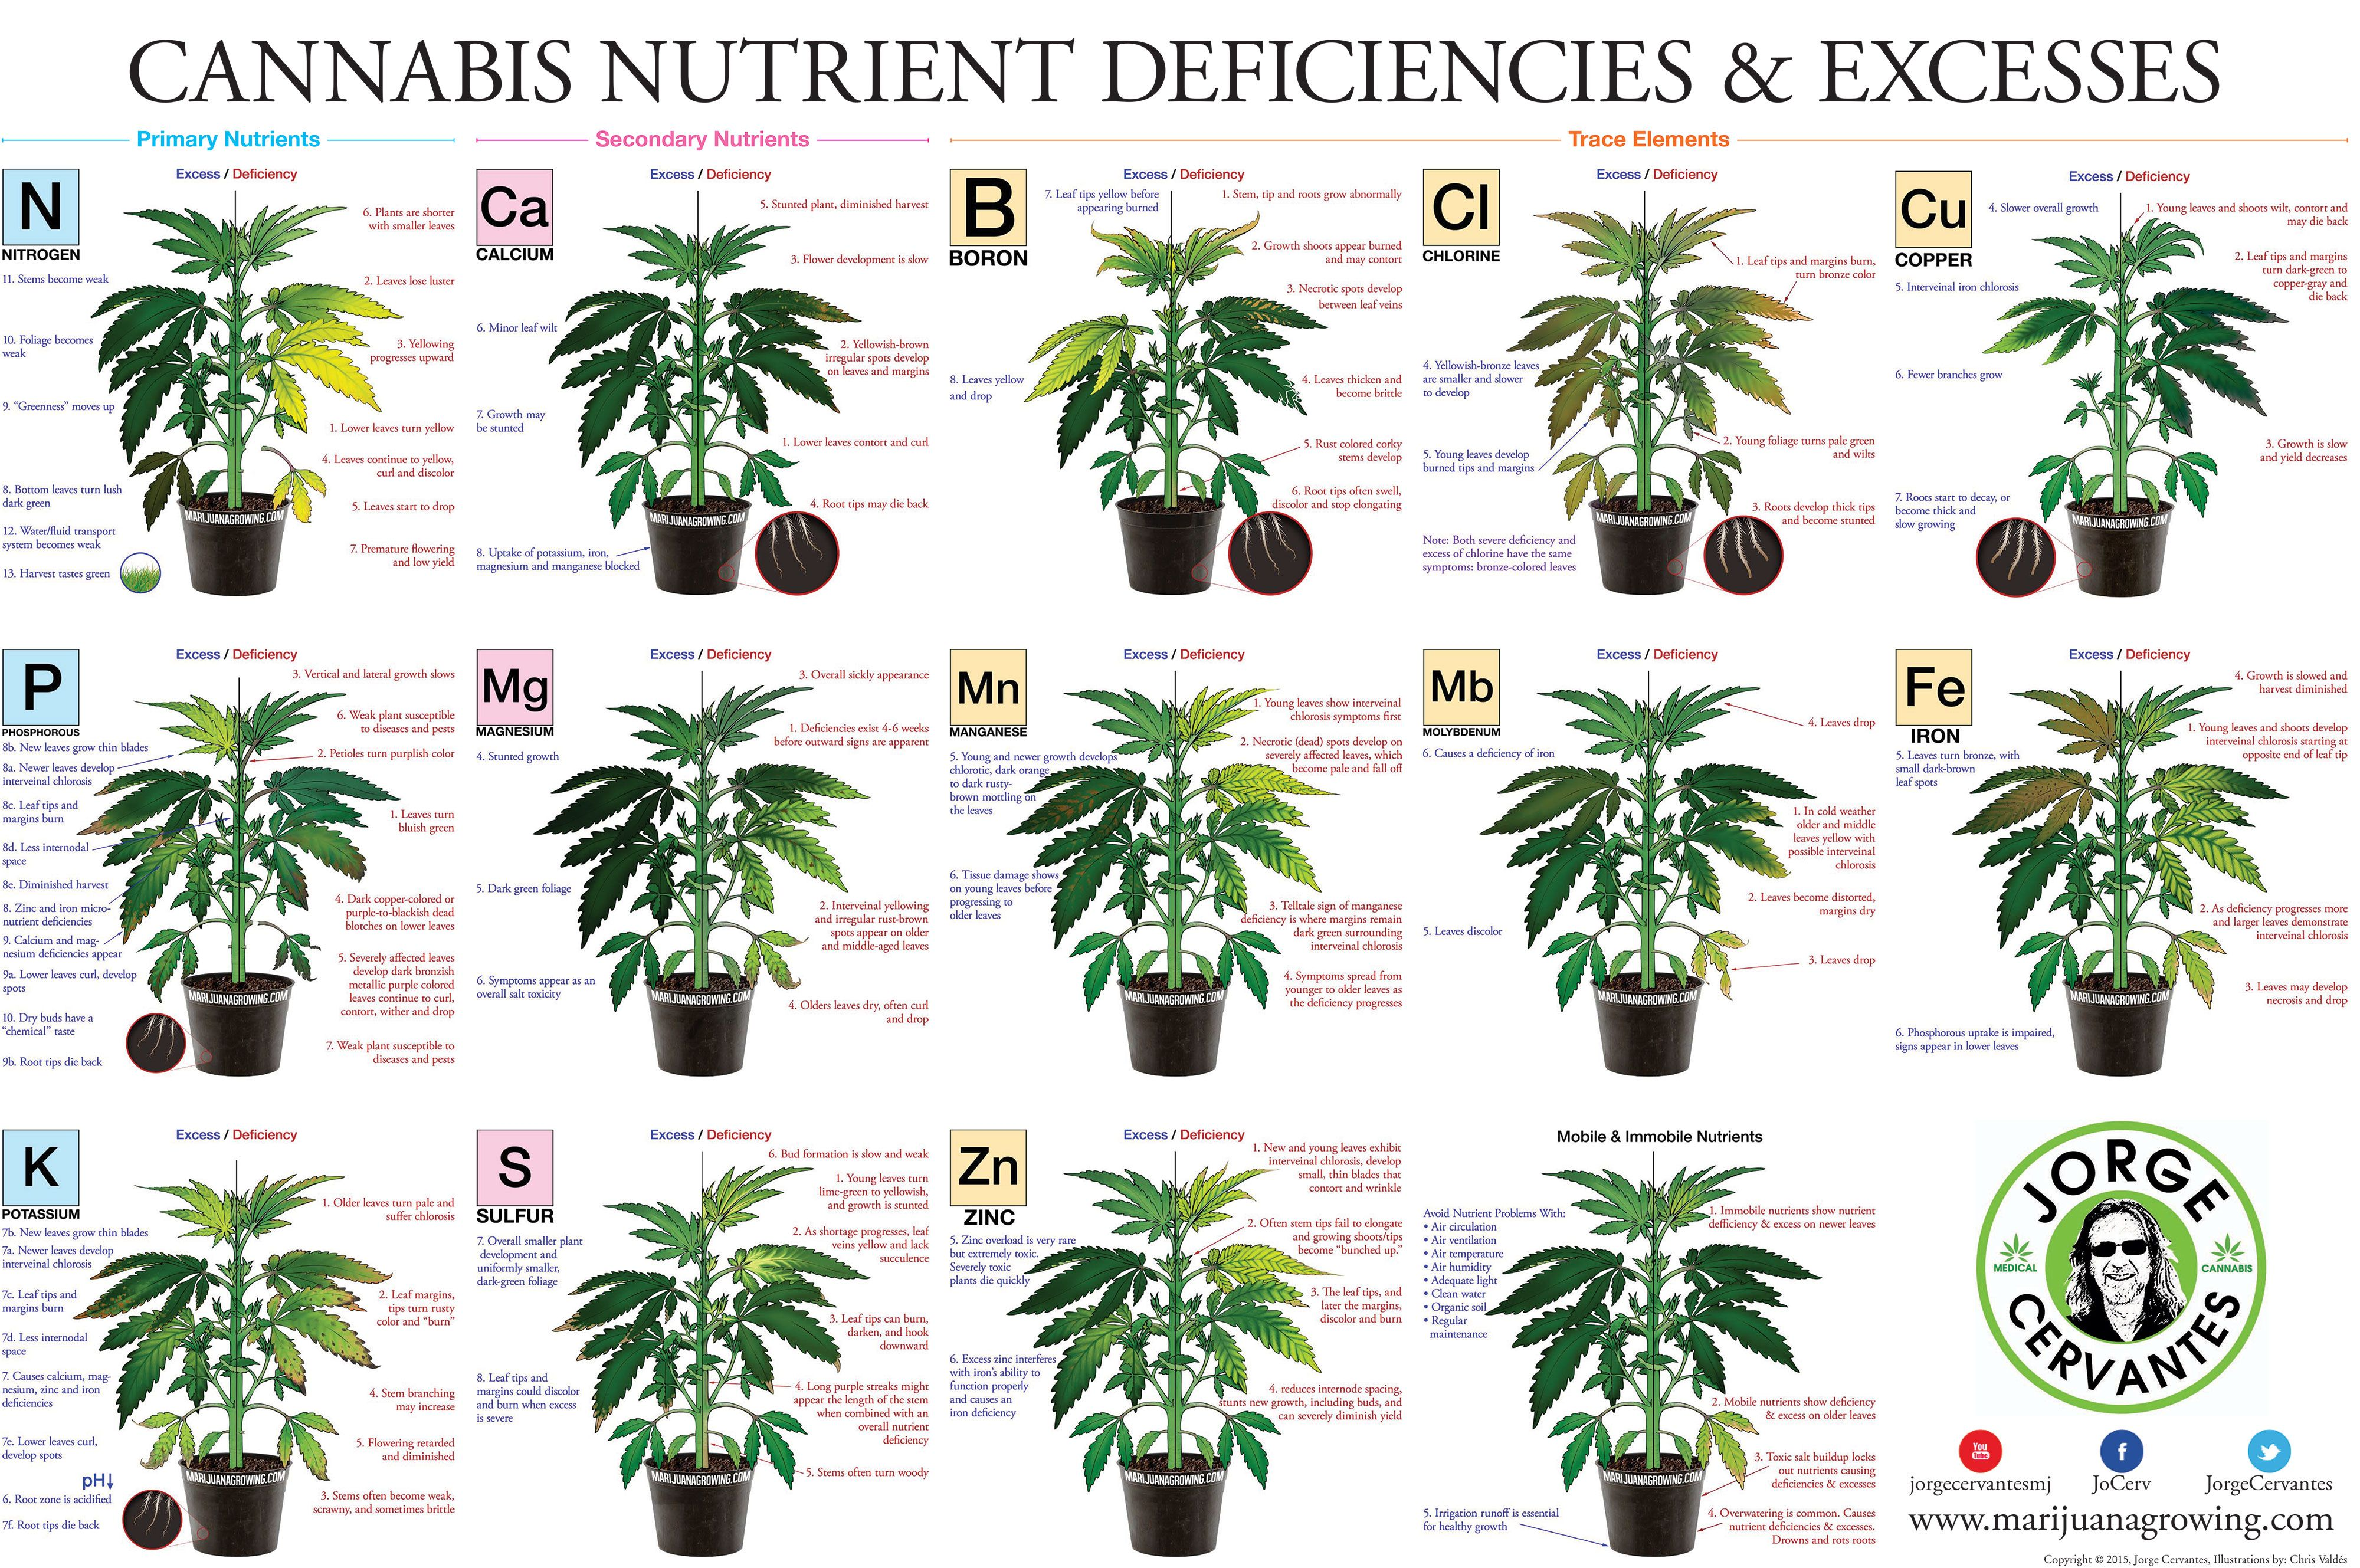 The cannabis encyclopedia book excerpts marijuanagrowing go the cannabis encyclopedia book excerpts marijuanagrowing cannabis growingcannabis plantcannabis cultivationgrowing marijuana indoorchartsmedical nvjuhfo Image collections